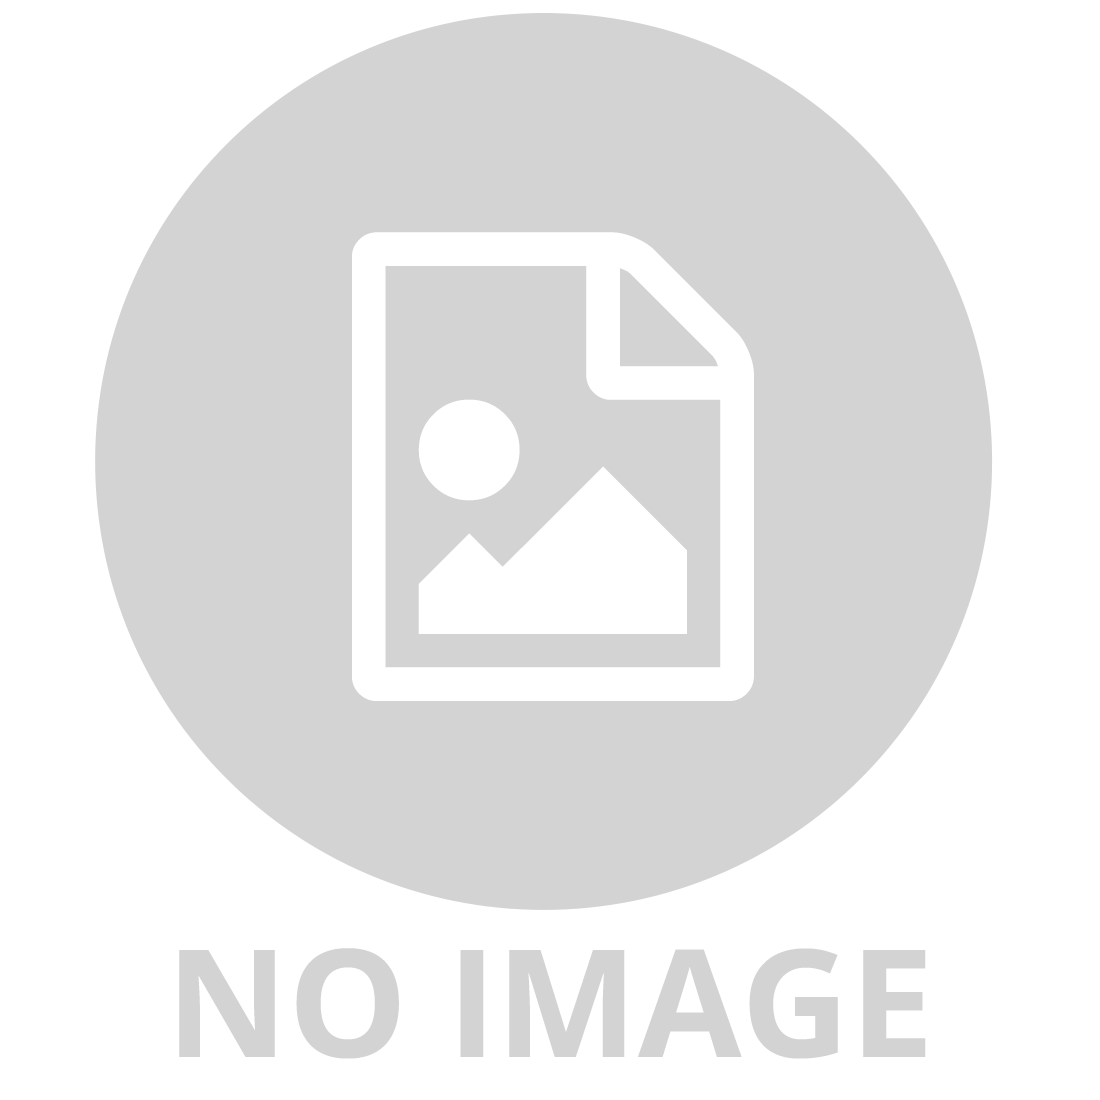 RAVENSBURGE LARGE FORMAT JIGSAW PUZZLE 750PC RIVERSIDE LIVING ROOM